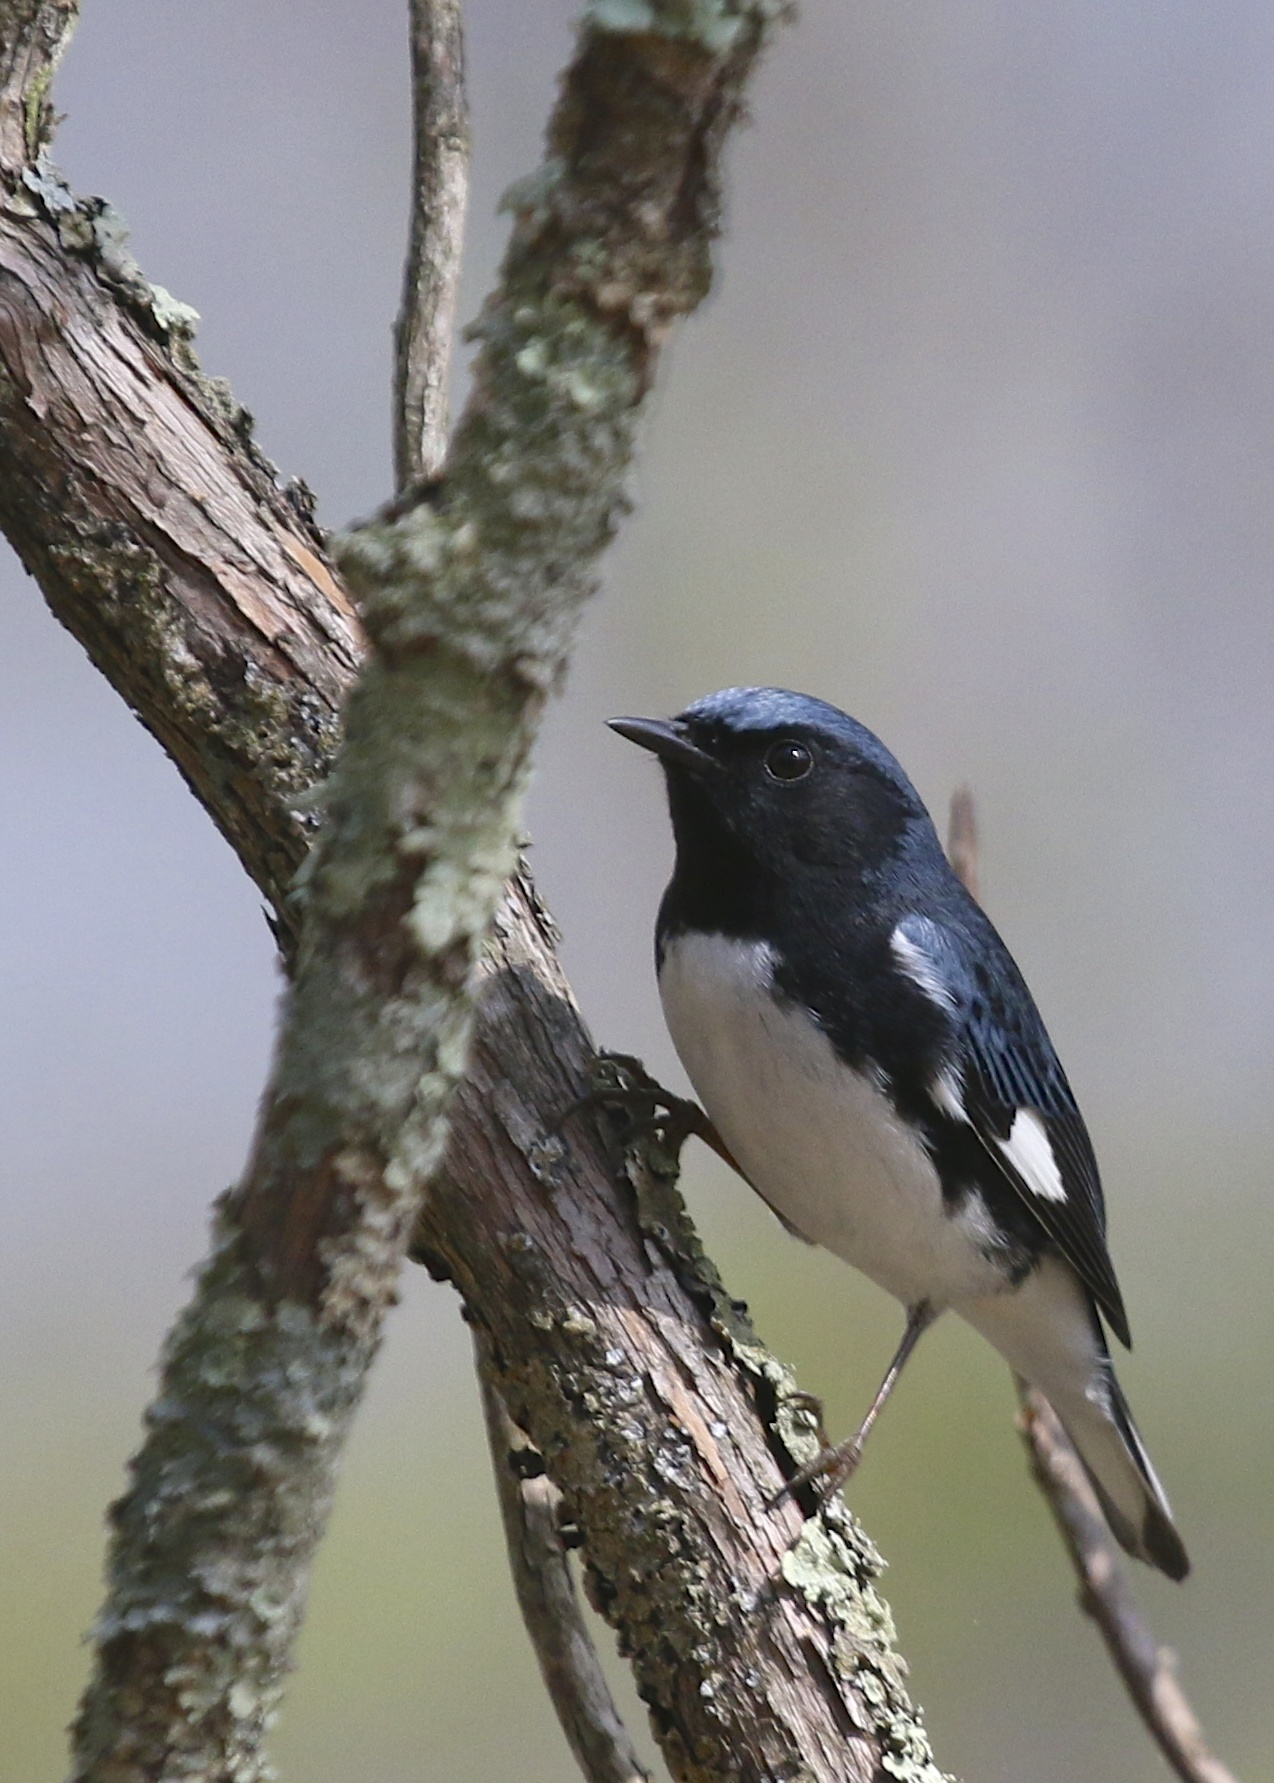 Male Black-throated Blue Warbler at the Bashakill State WMA, 5/10/14.